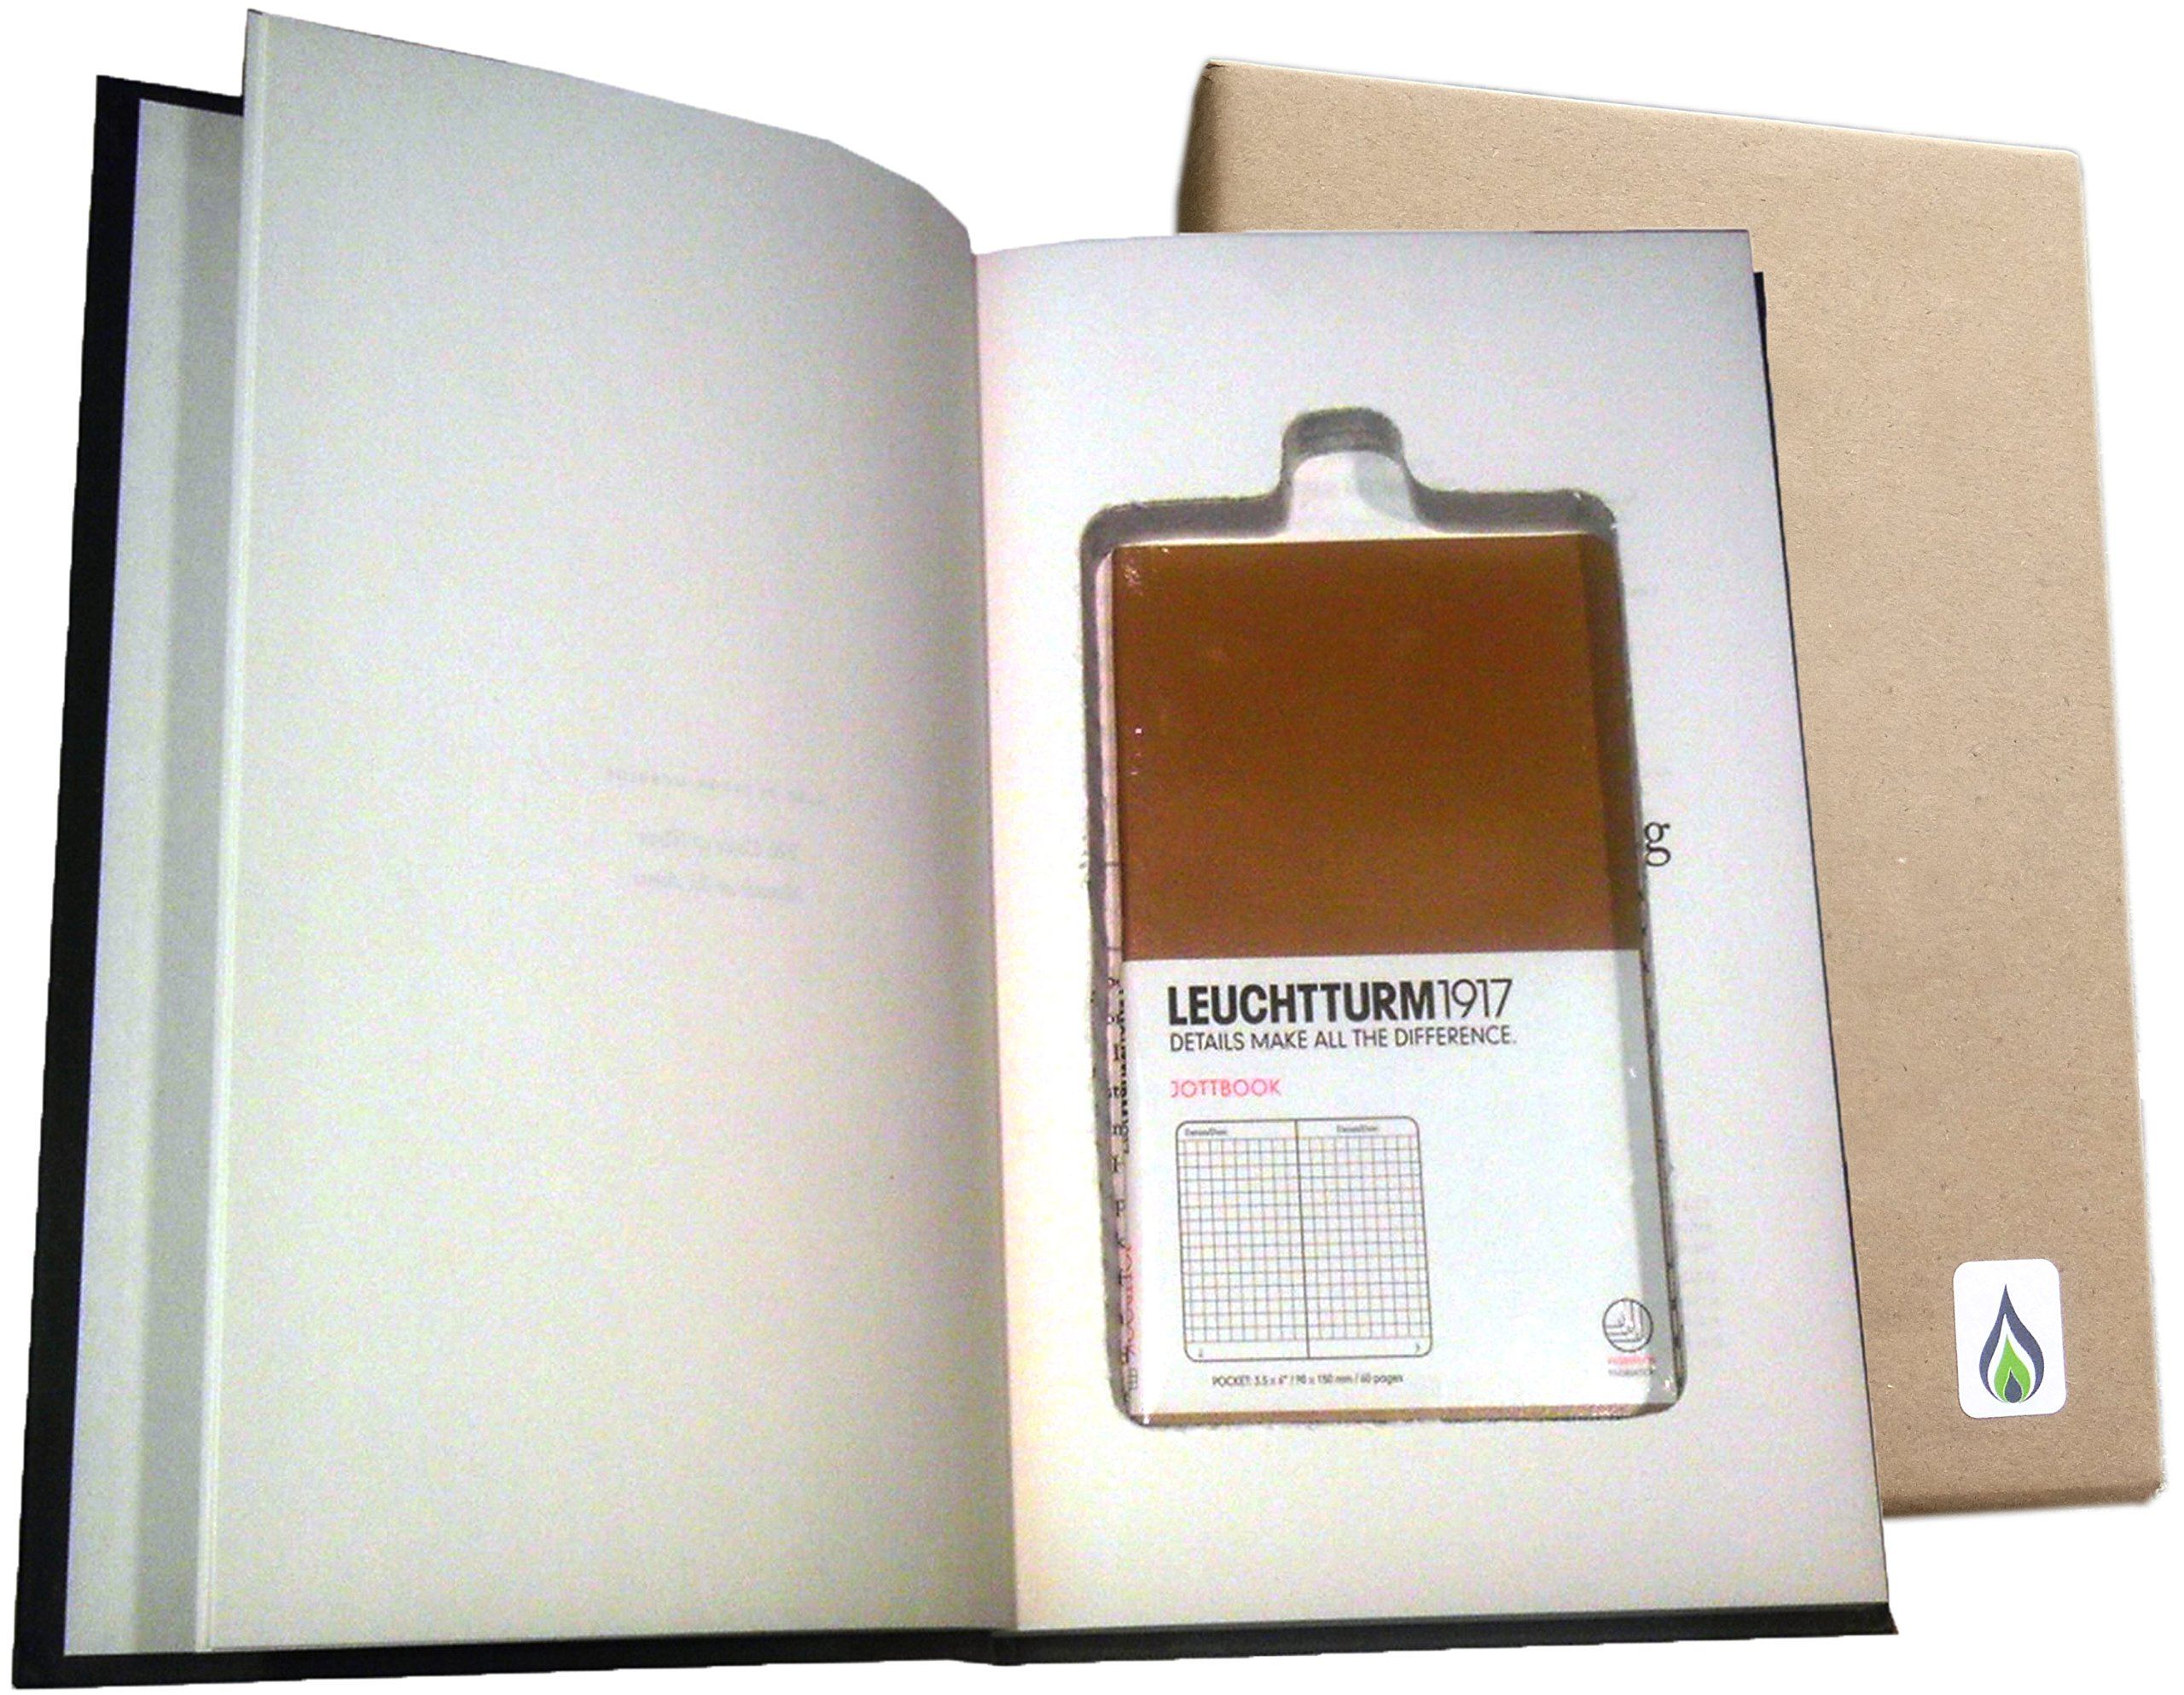 SneakyBooks Recycled Hollow Book Password Diversion Safe (Tan blank book included) by SneakyBooks